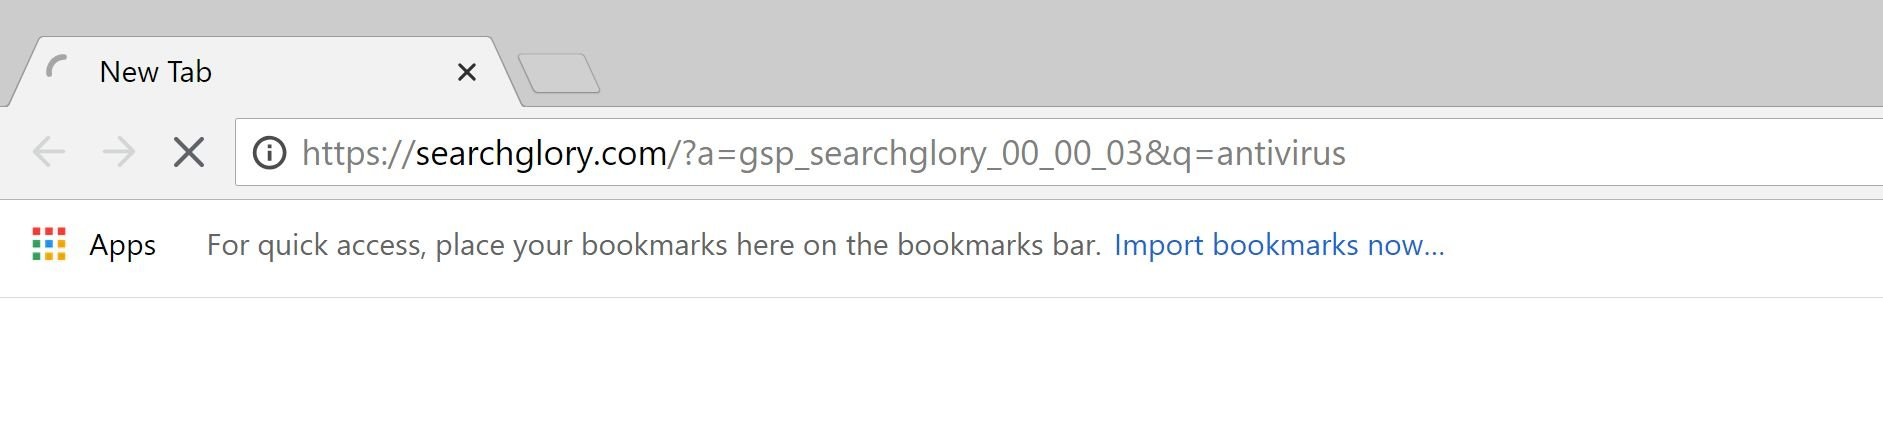 Searchglory.com redirect virus